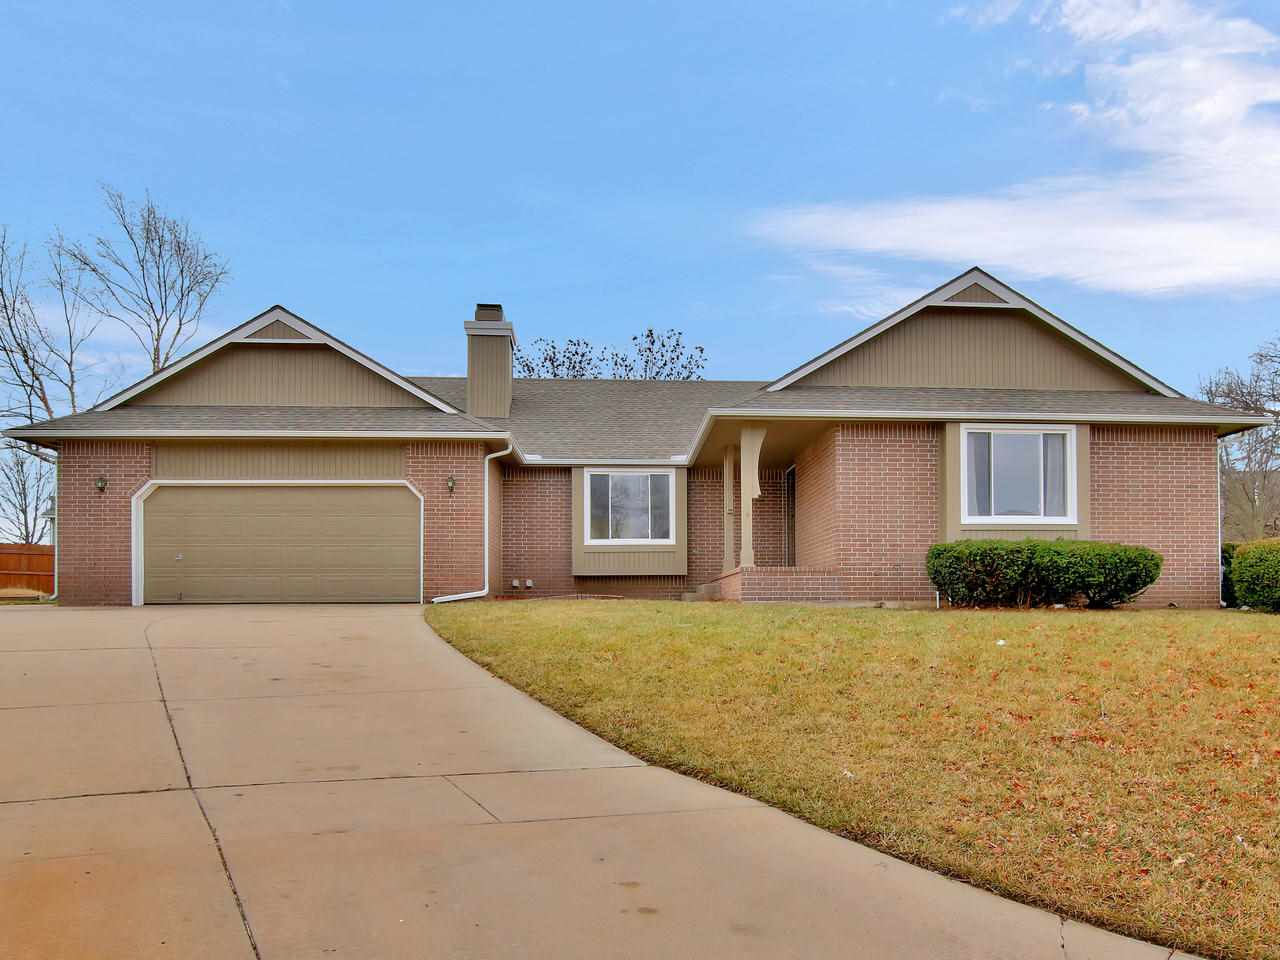 Spacious 4BR, 3.5BA ranch located on a cul-de-sac lot.  Offering many features including vaulted cei